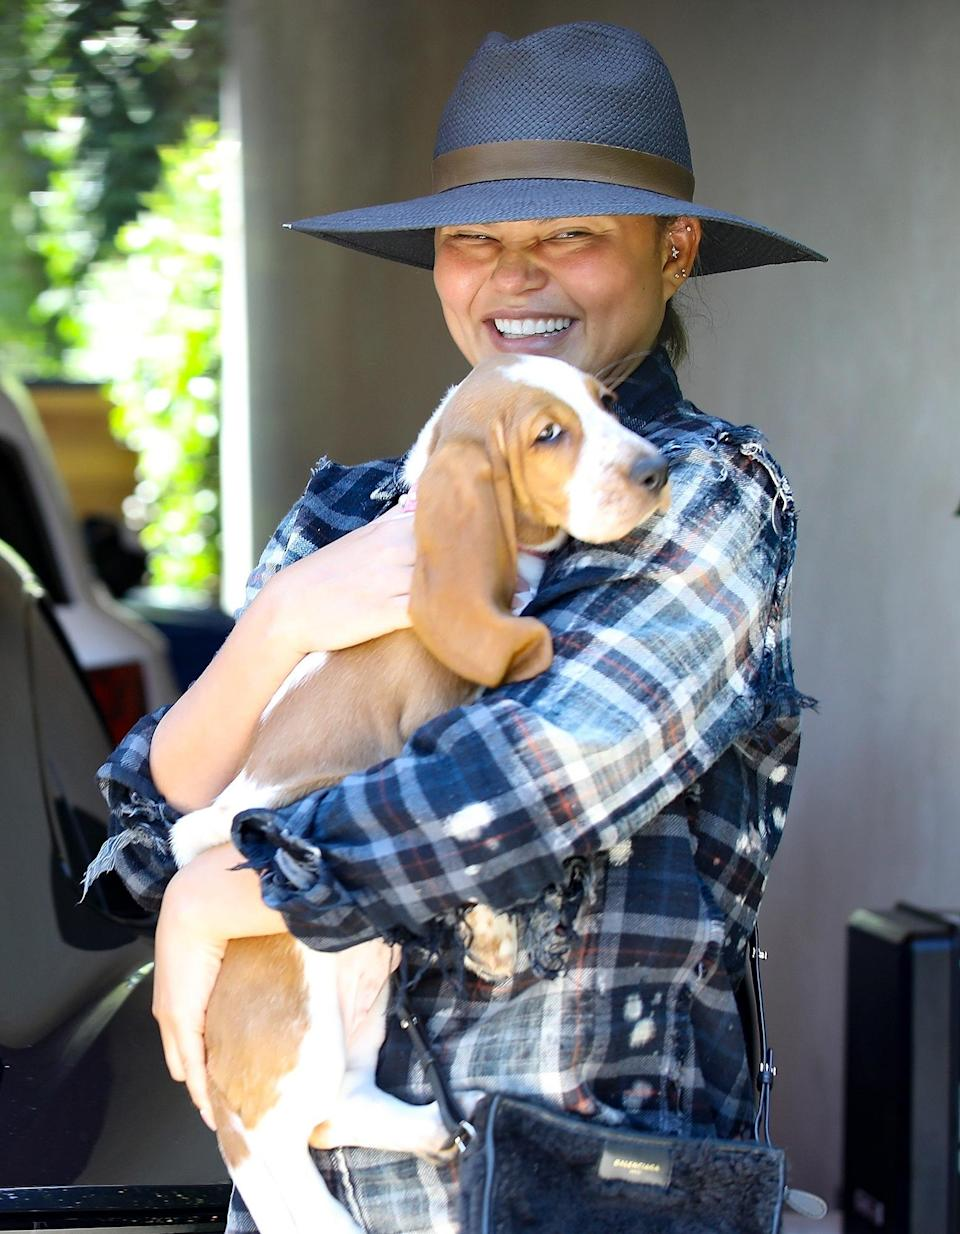 <p>Chrissy Teigen takes her new basset hound puppy Pearl to visit her office in Santa Monica on July 28.</p>